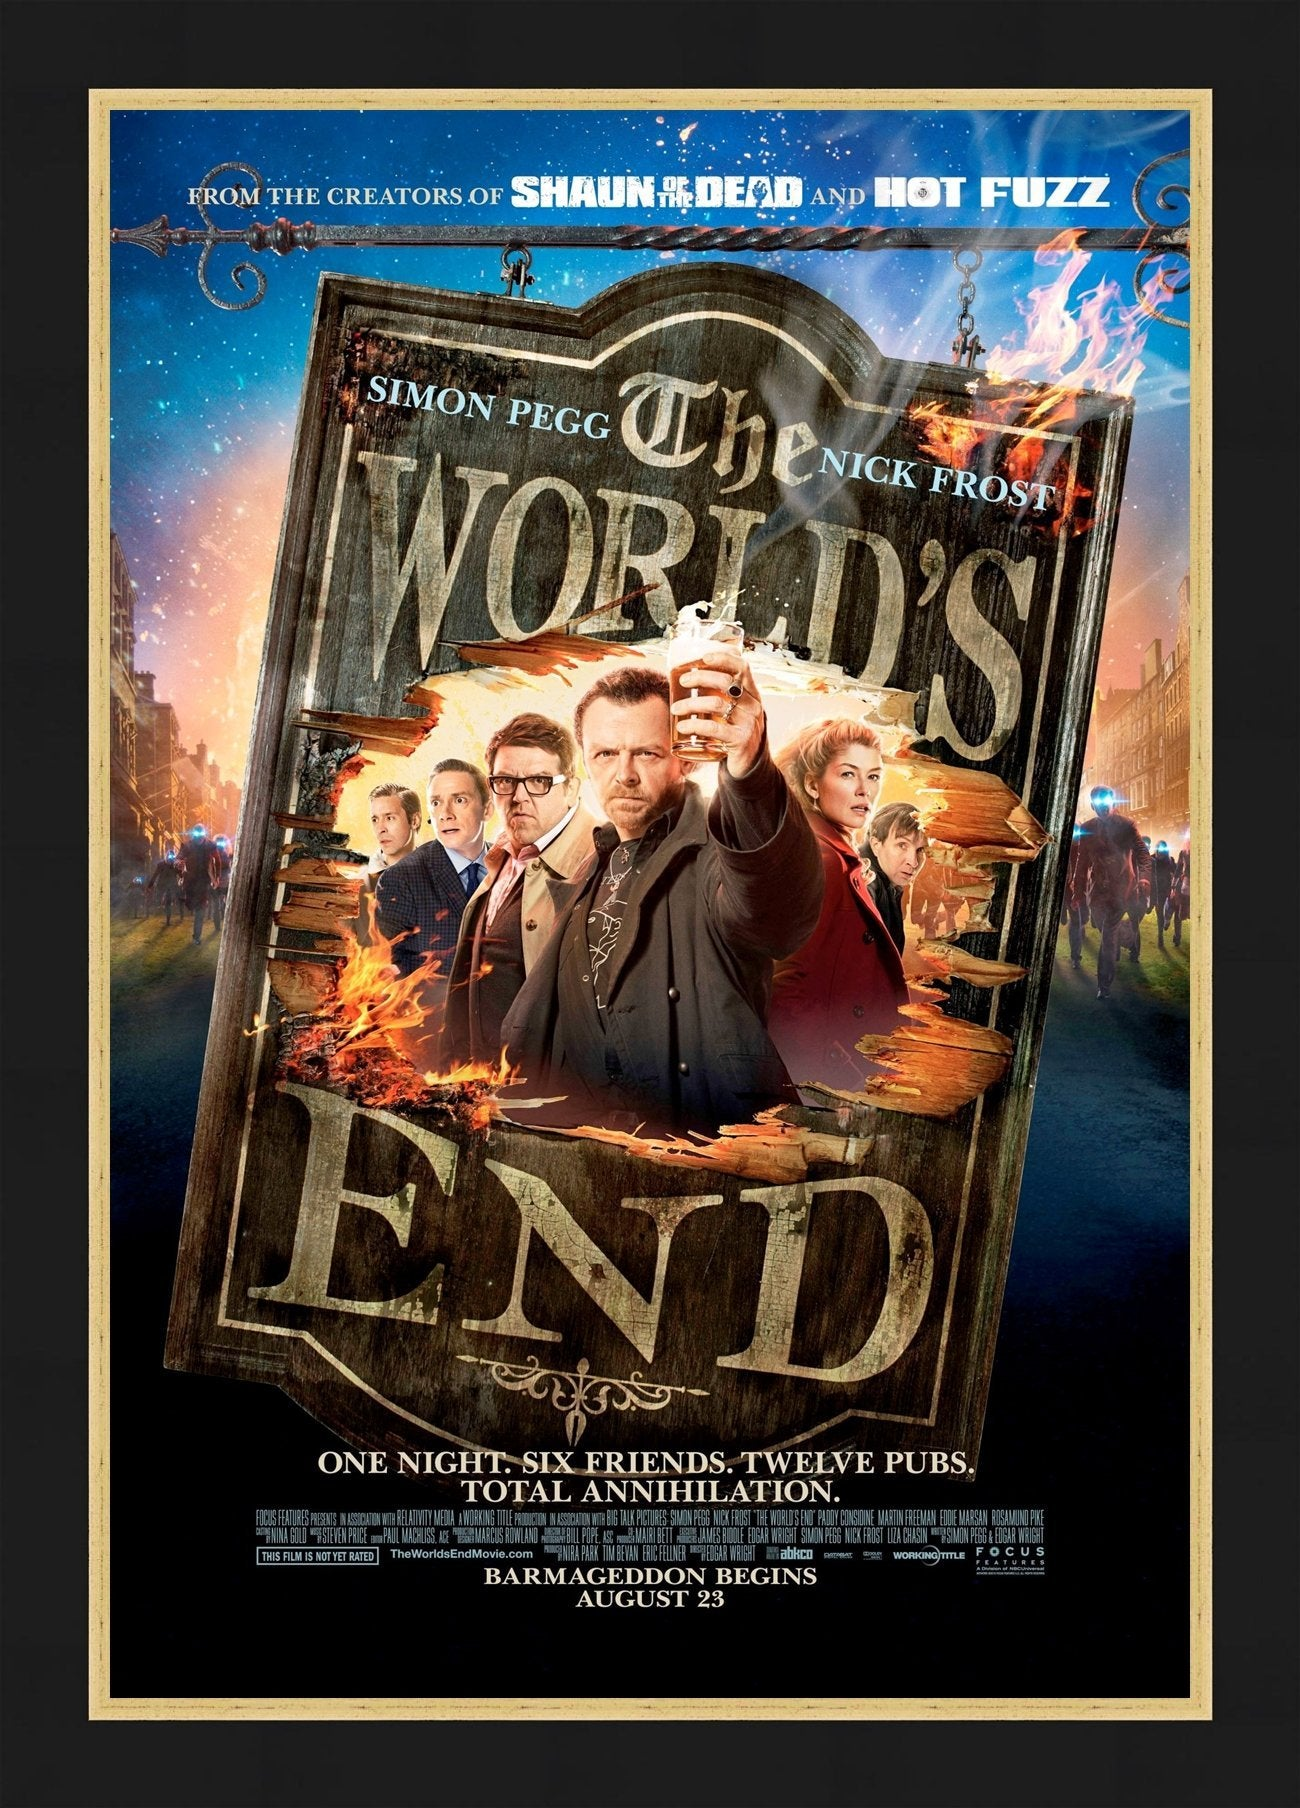 An original movie poster for the Edgar Wright film The World's End